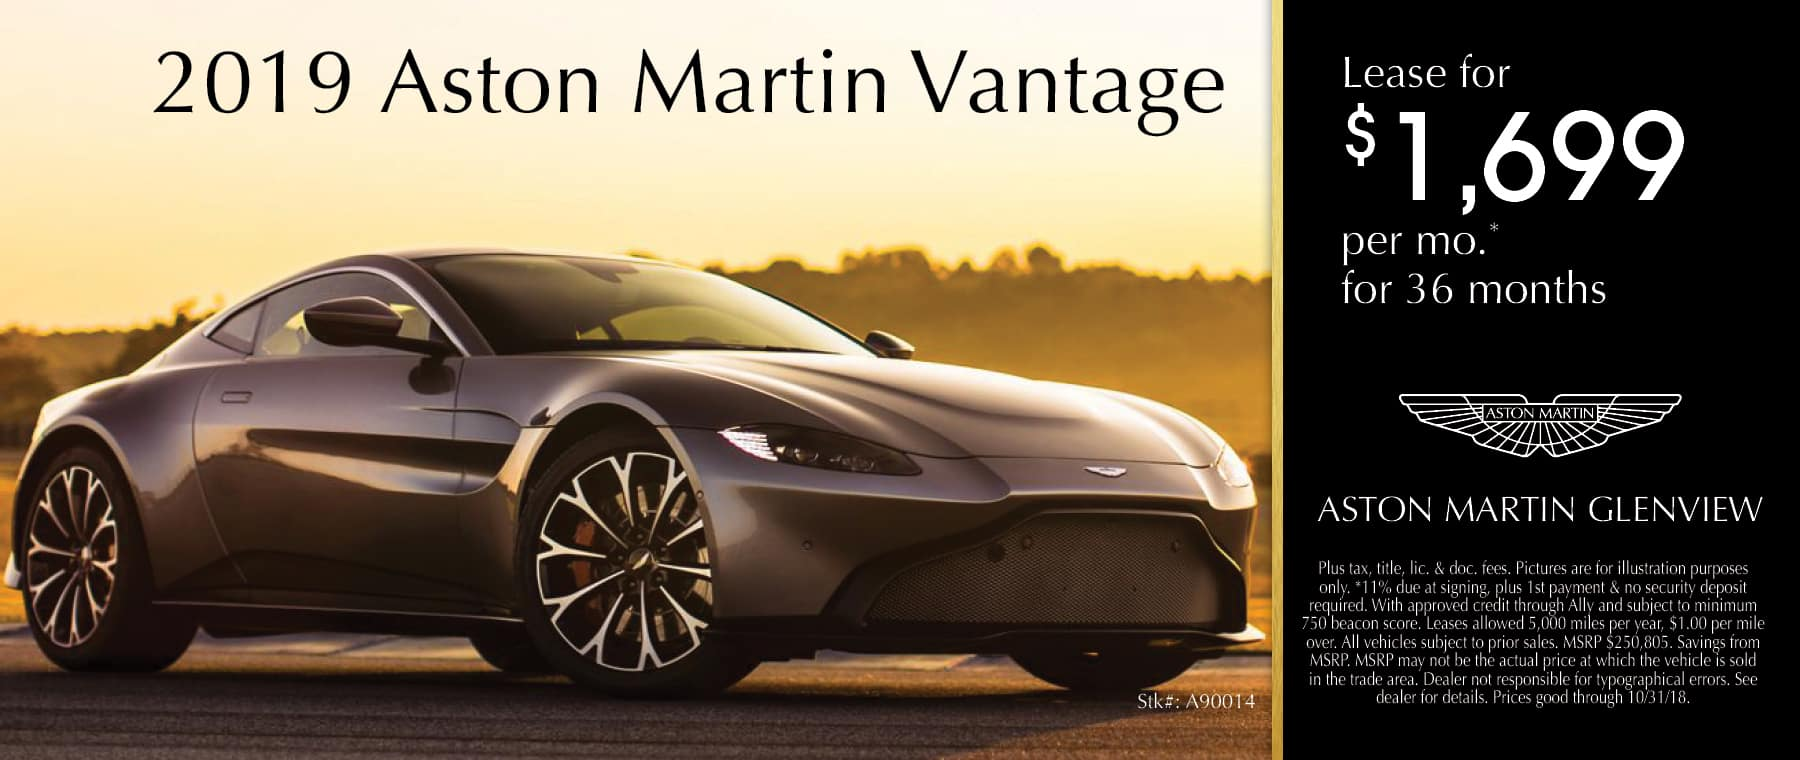 Glenview Luxury Imports Aston Martin Lotus Dealer In Chicagoland - Aston martin dealerships